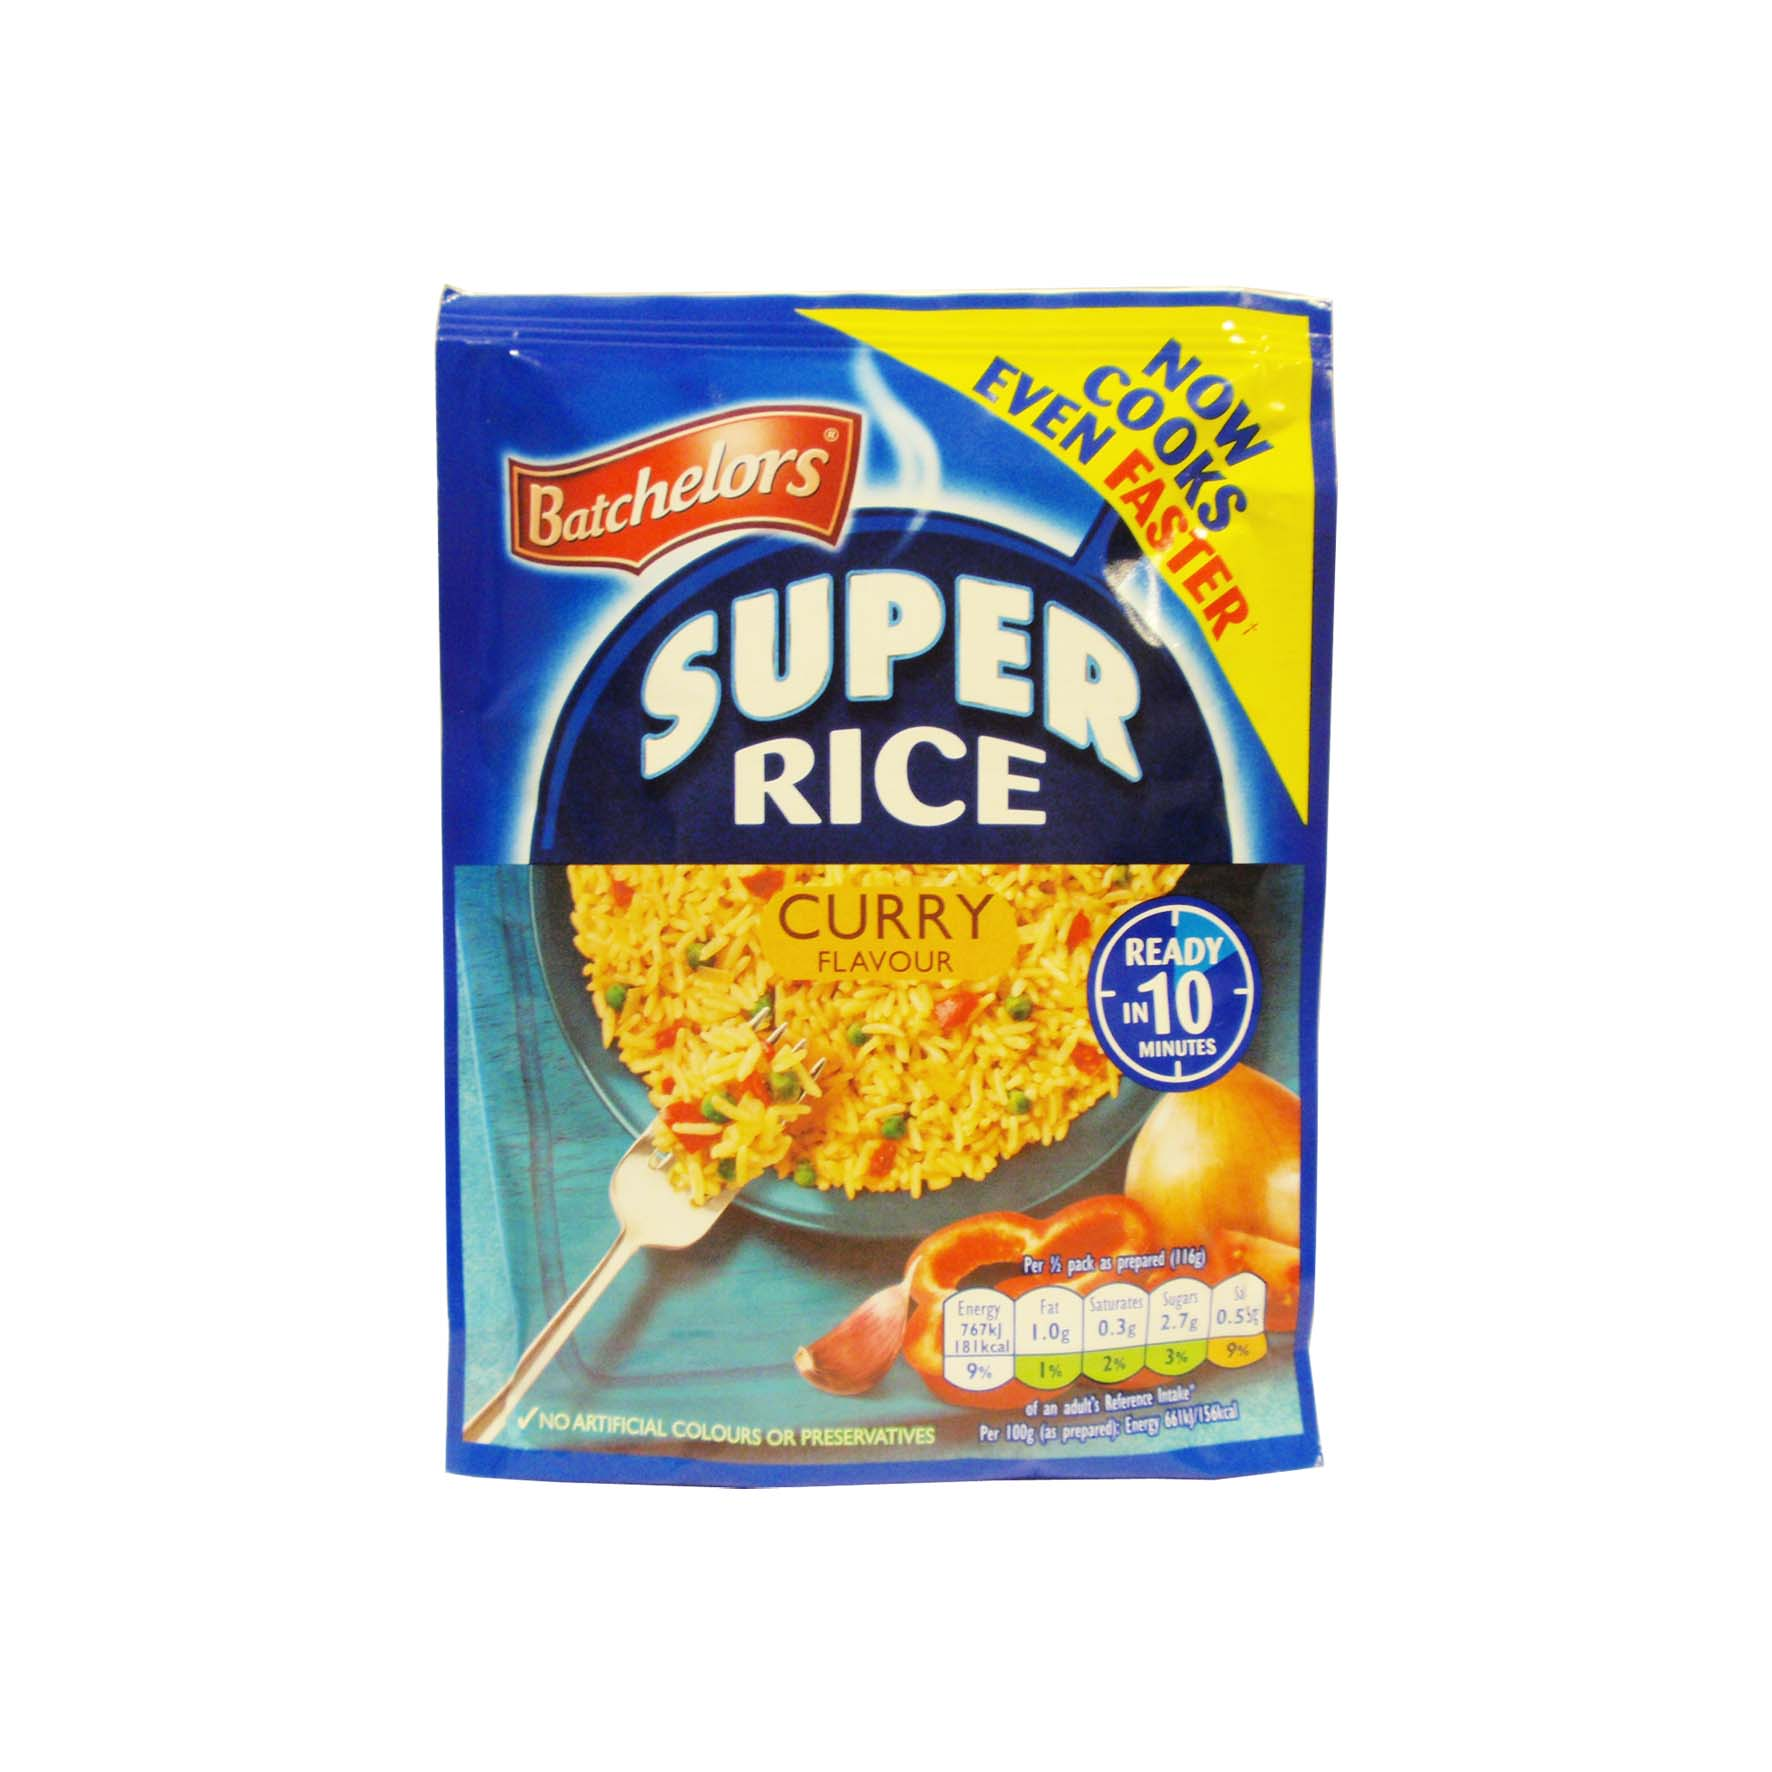 Batch super rice s.curry 100g